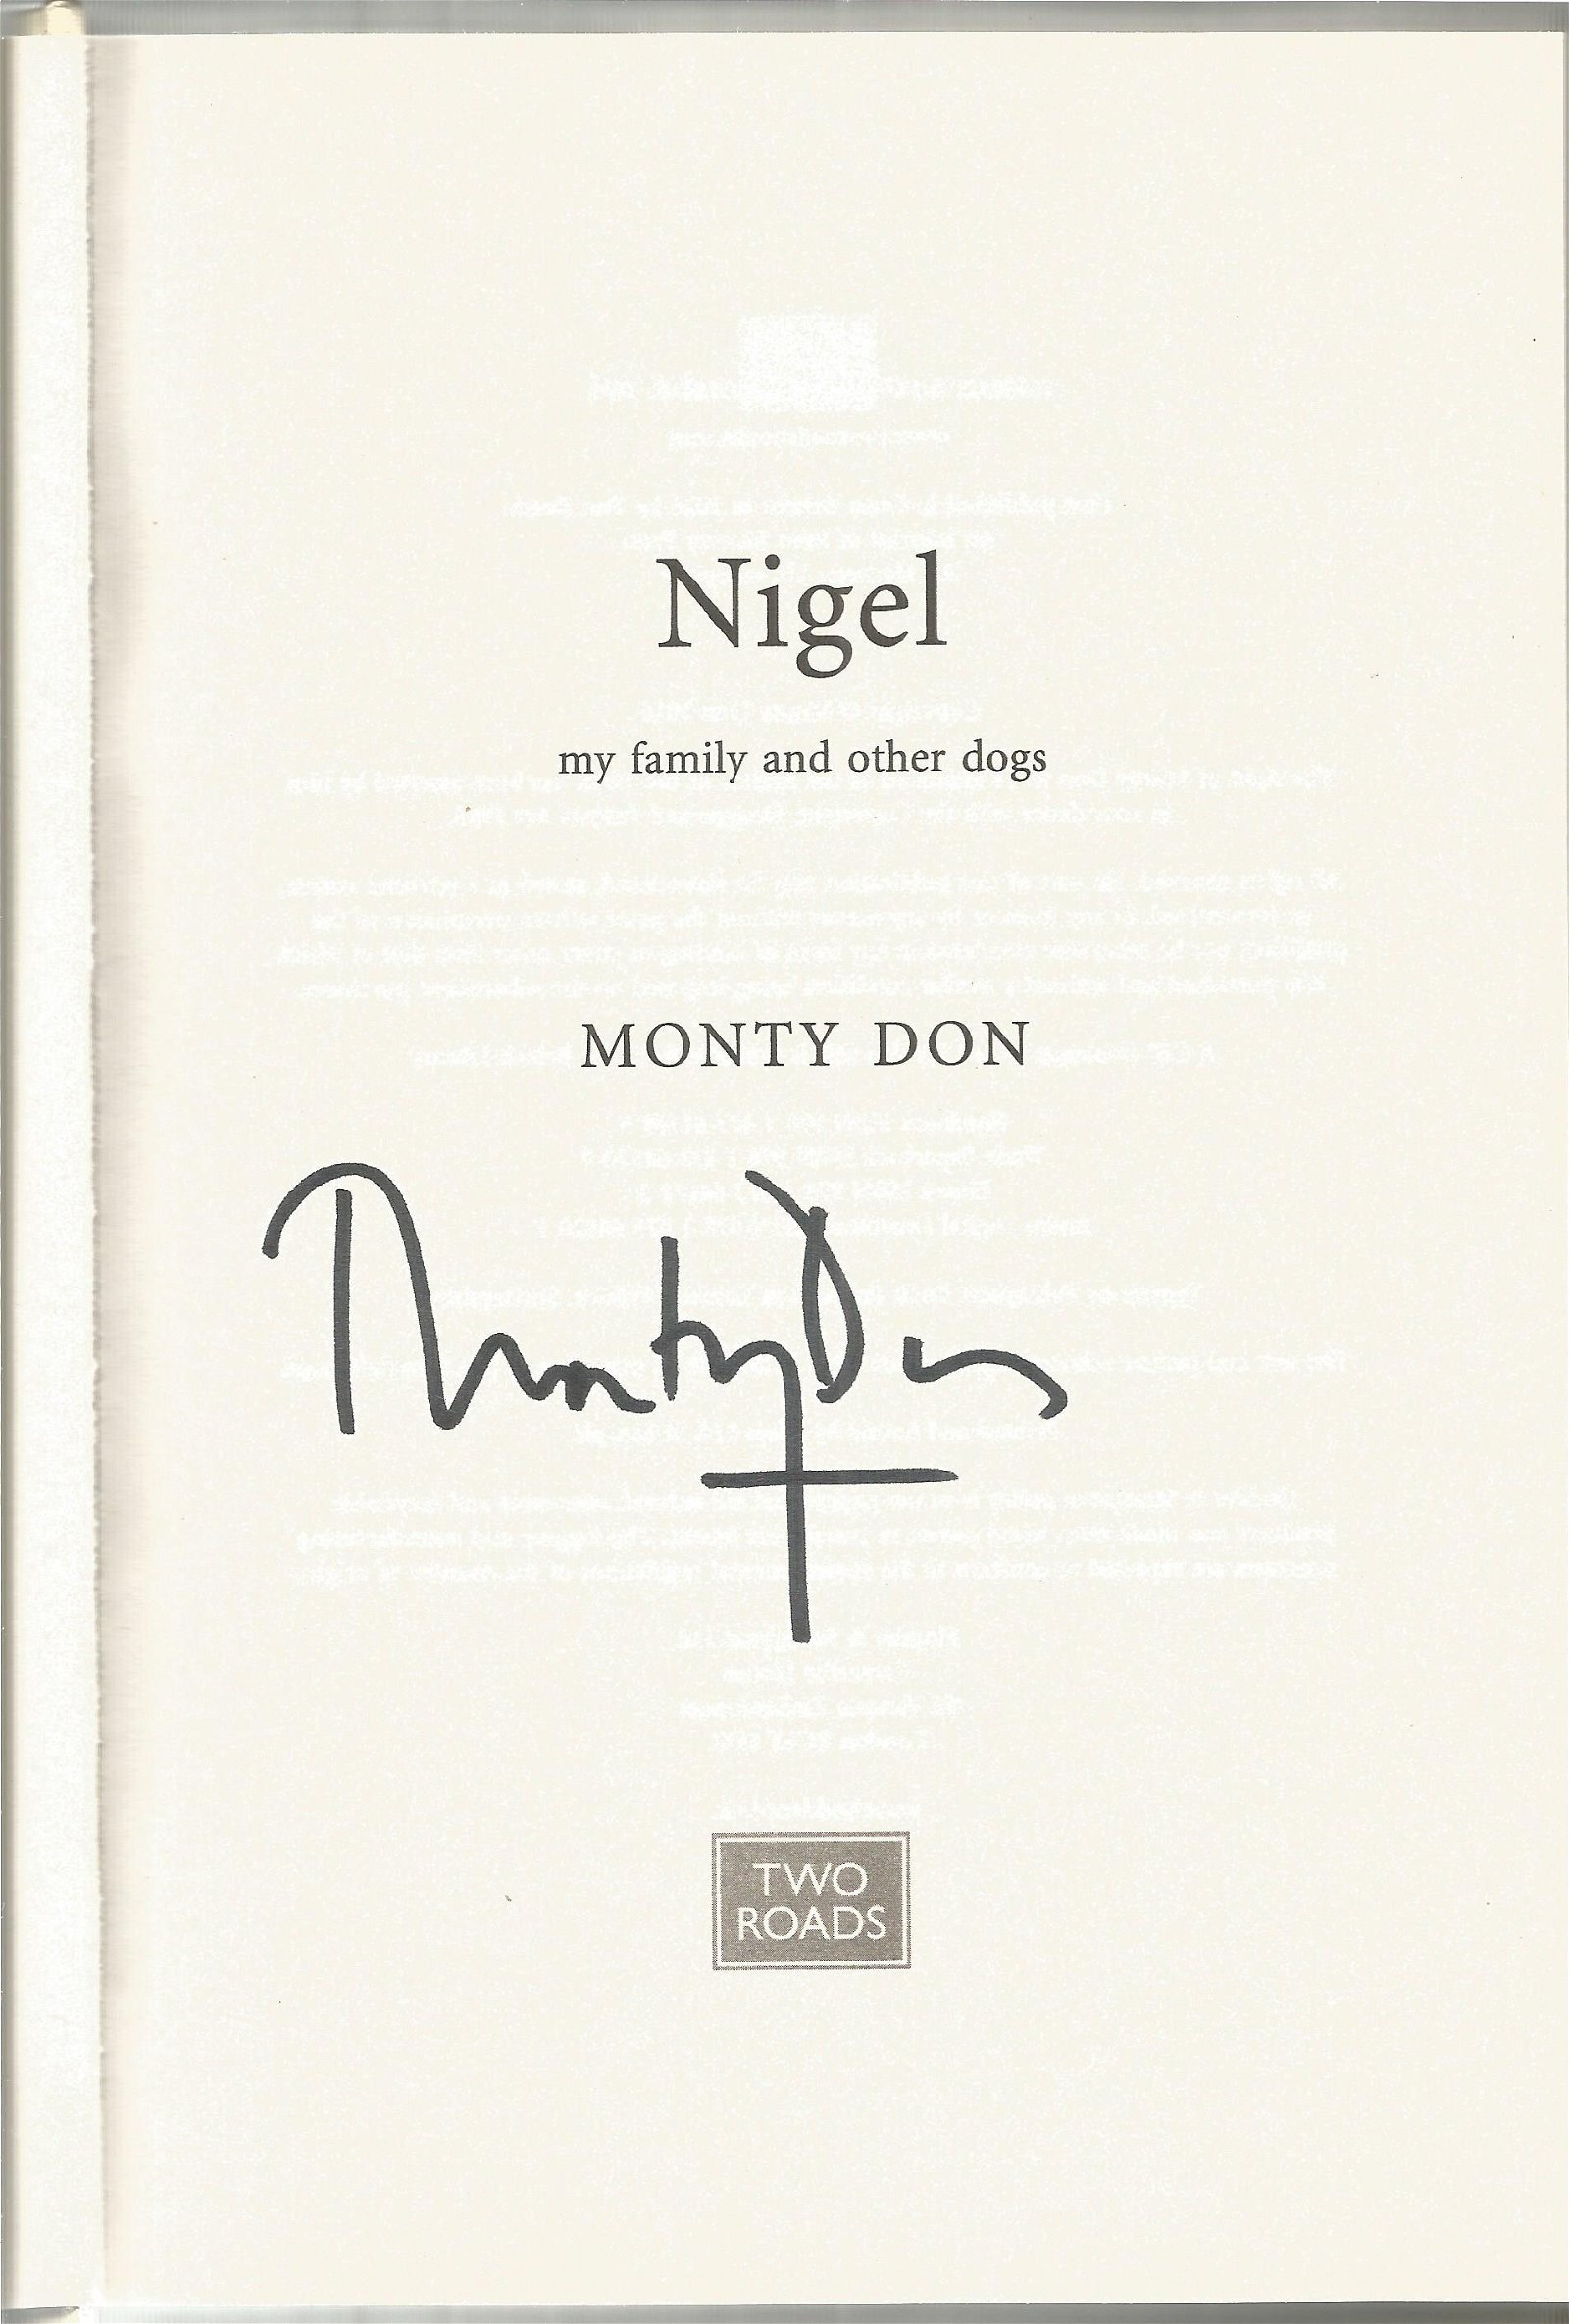 Monty Don hardback book titled Nigel My Family and